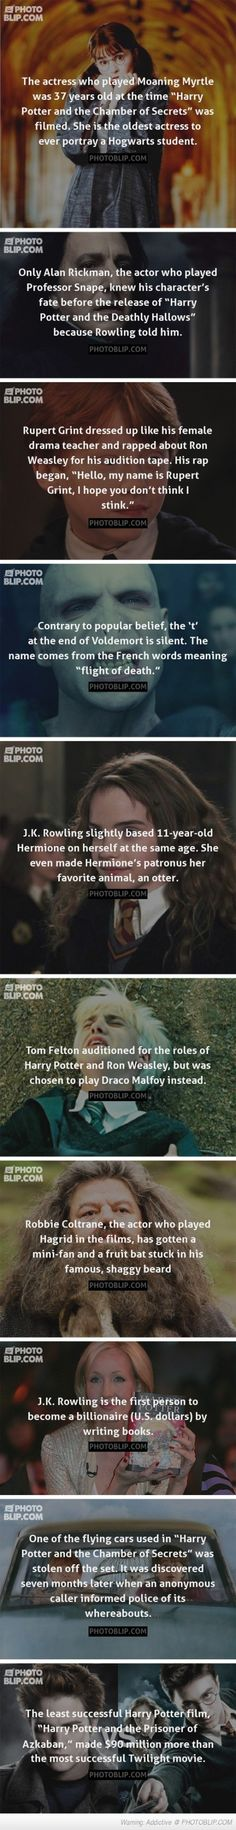 Harry Potter Facts. The last fact makes this pin even more worth it haha